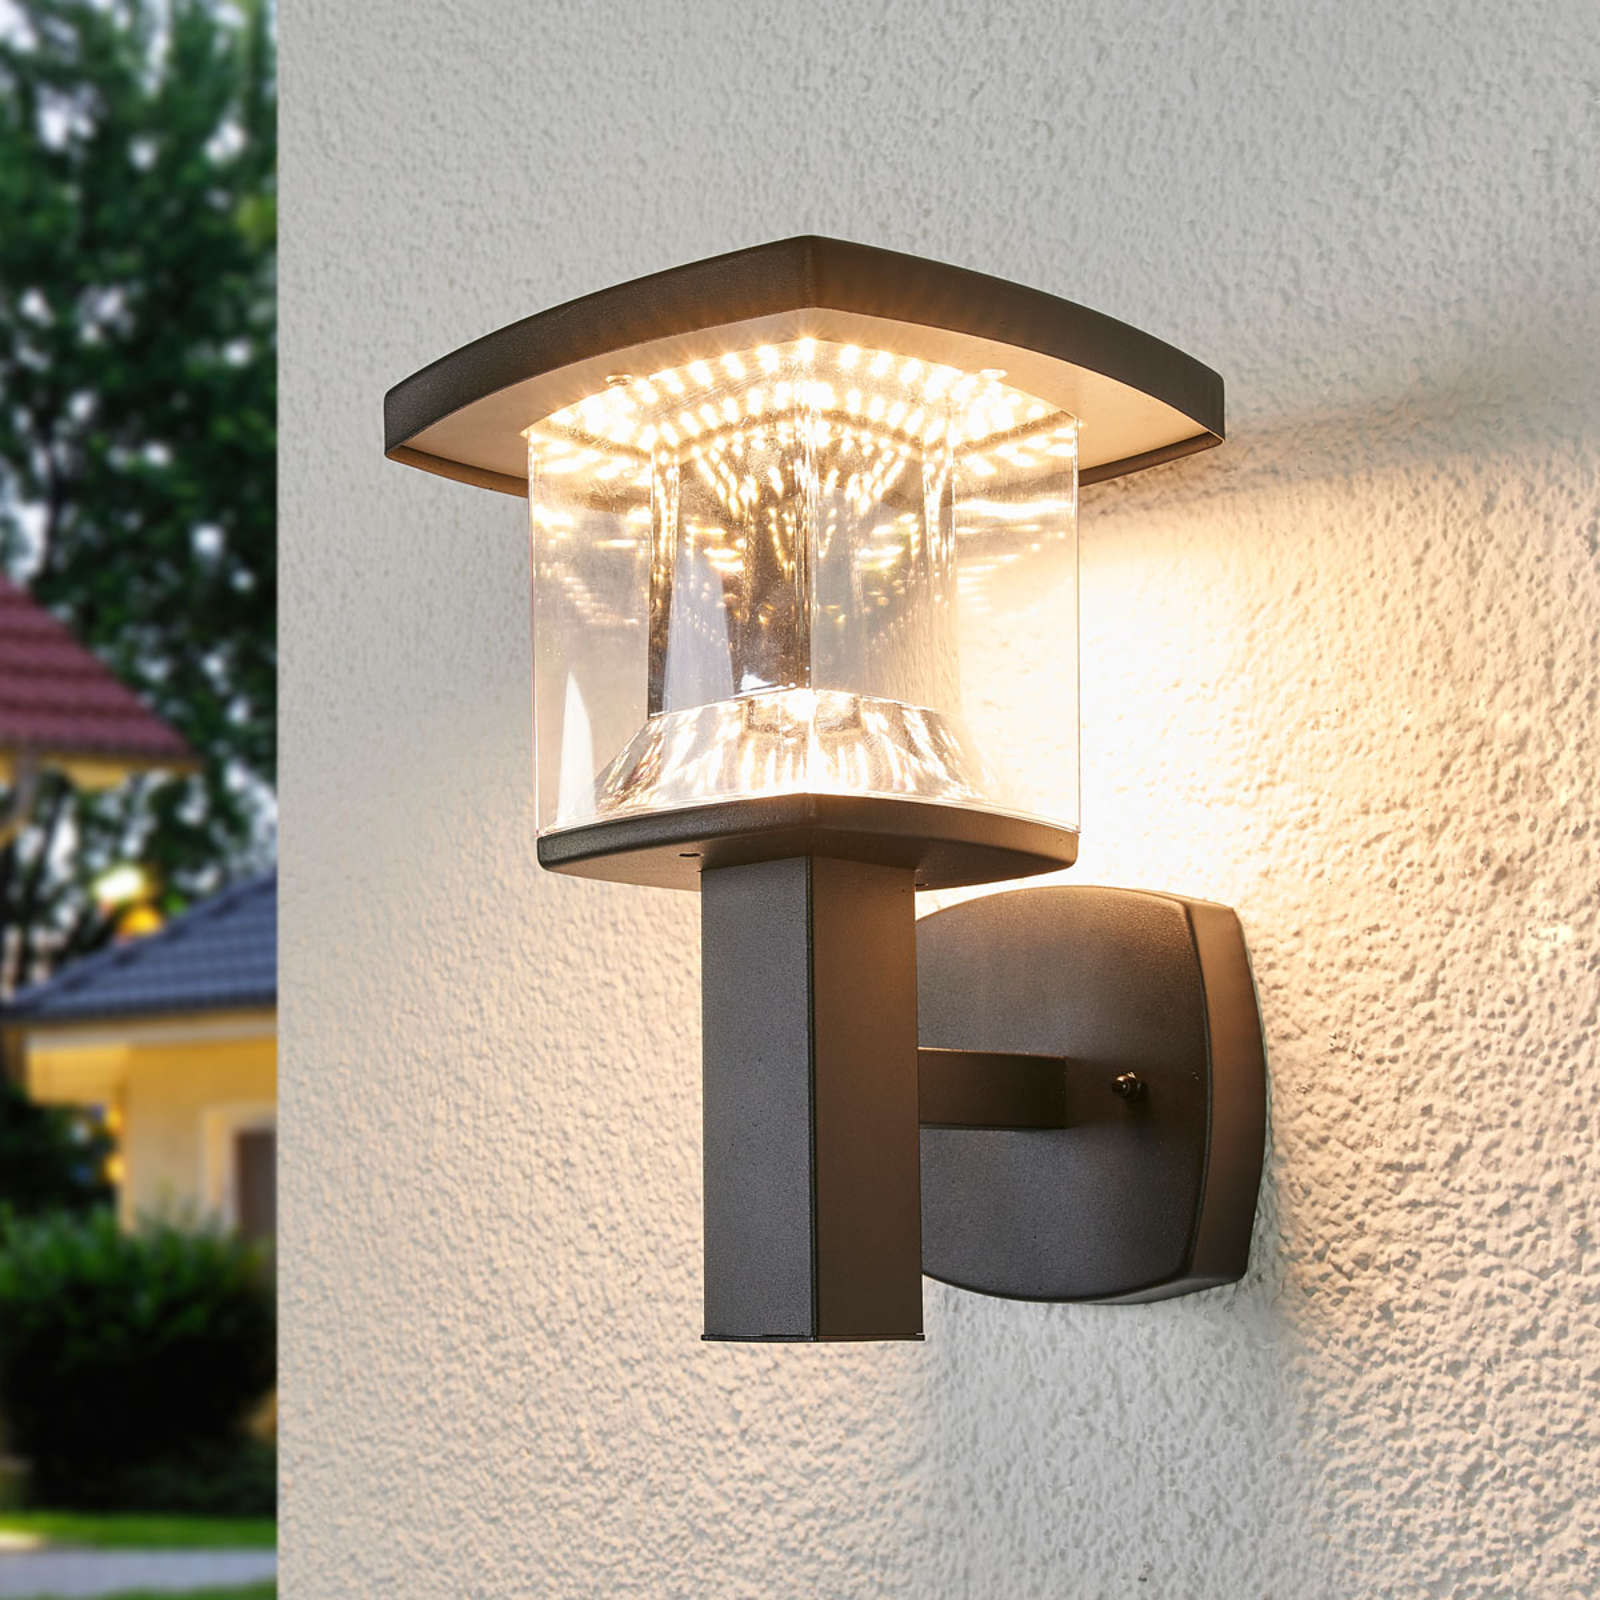 Askan stainless steel LED outdoor wall light_9988176_1